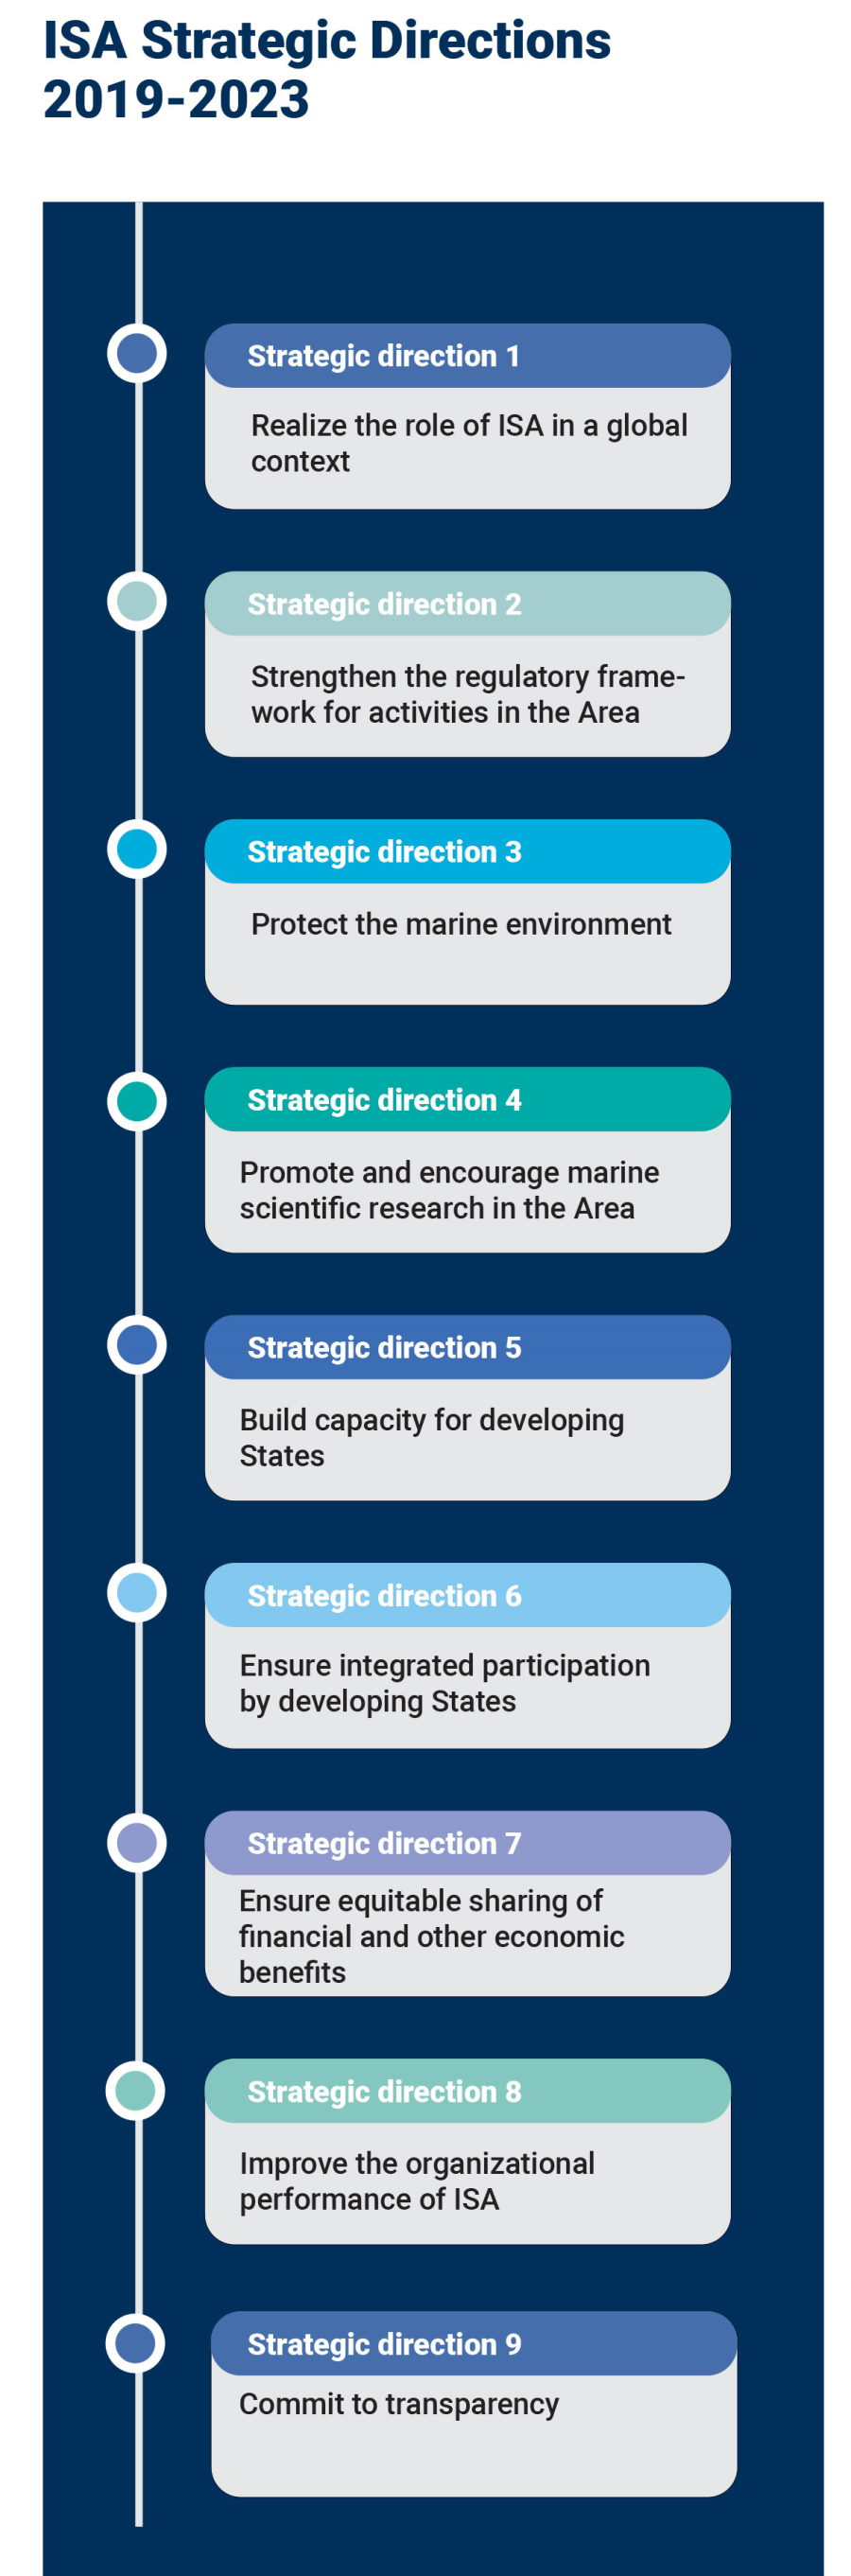 ISA Strategic Directions Infographic